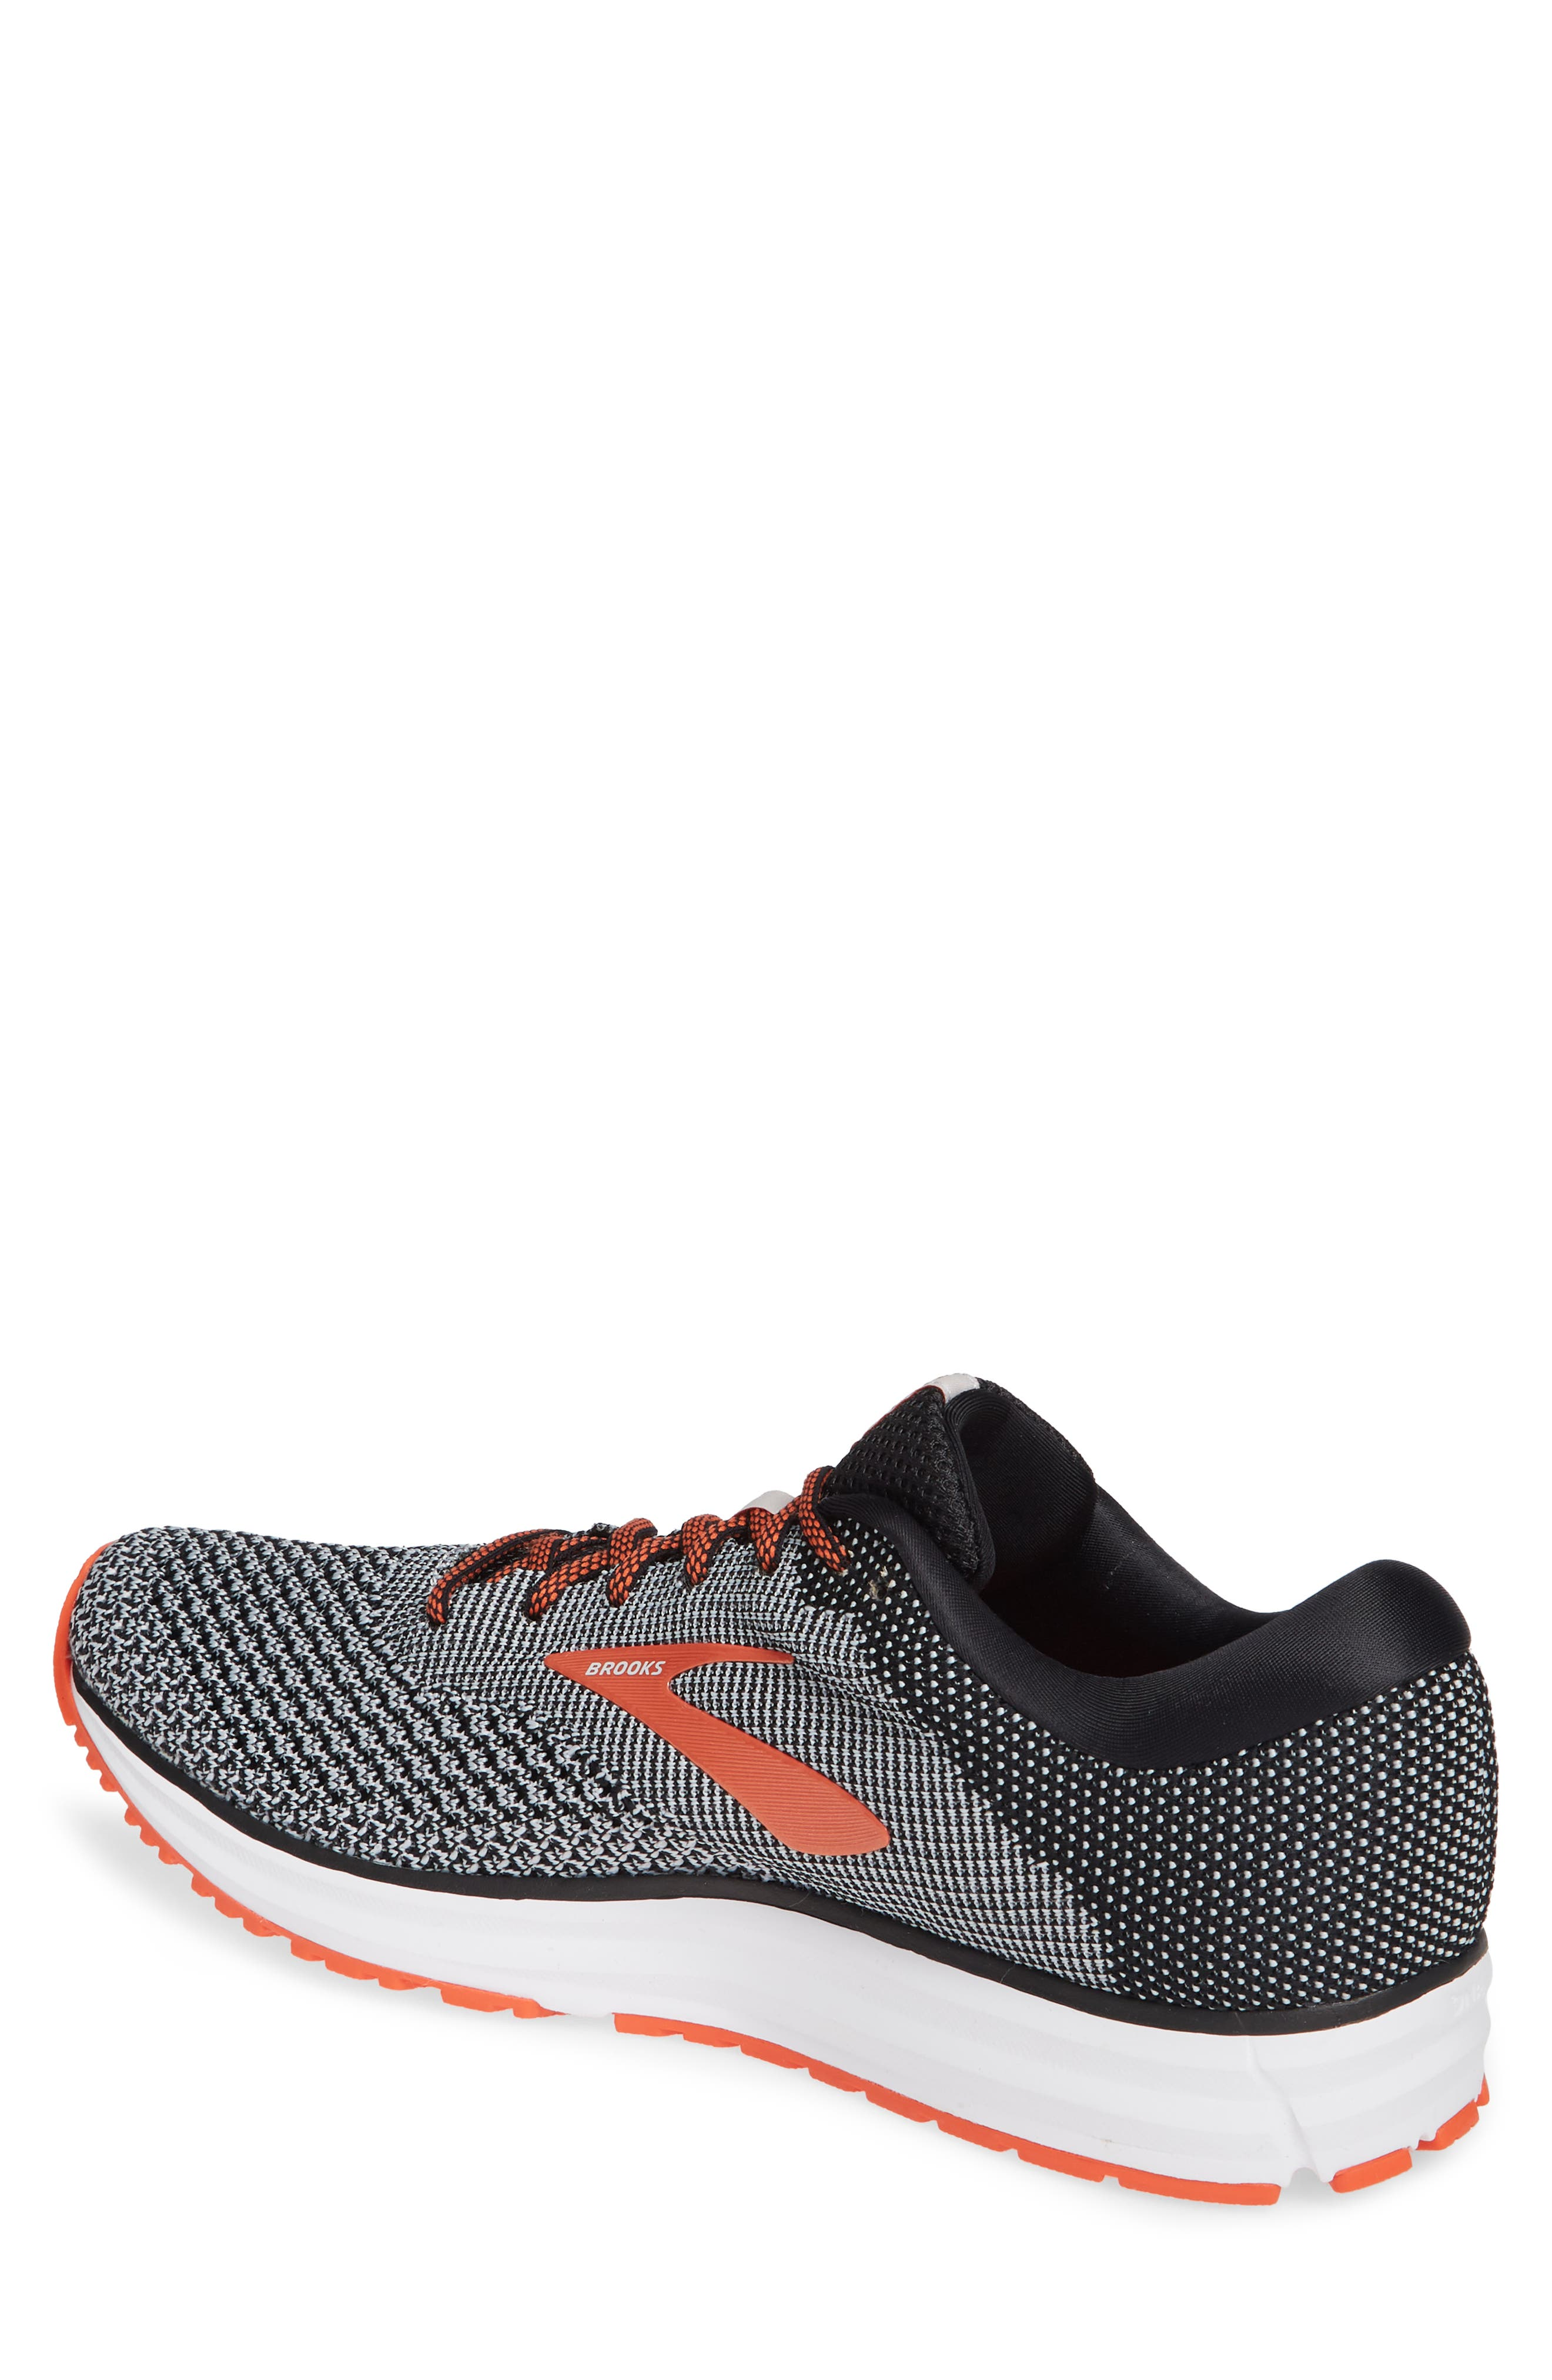 Revel 2 Running Shoe,                             Alternate thumbnail 2, color,                             BLACK/ LIGHT GREY/ ORANGE